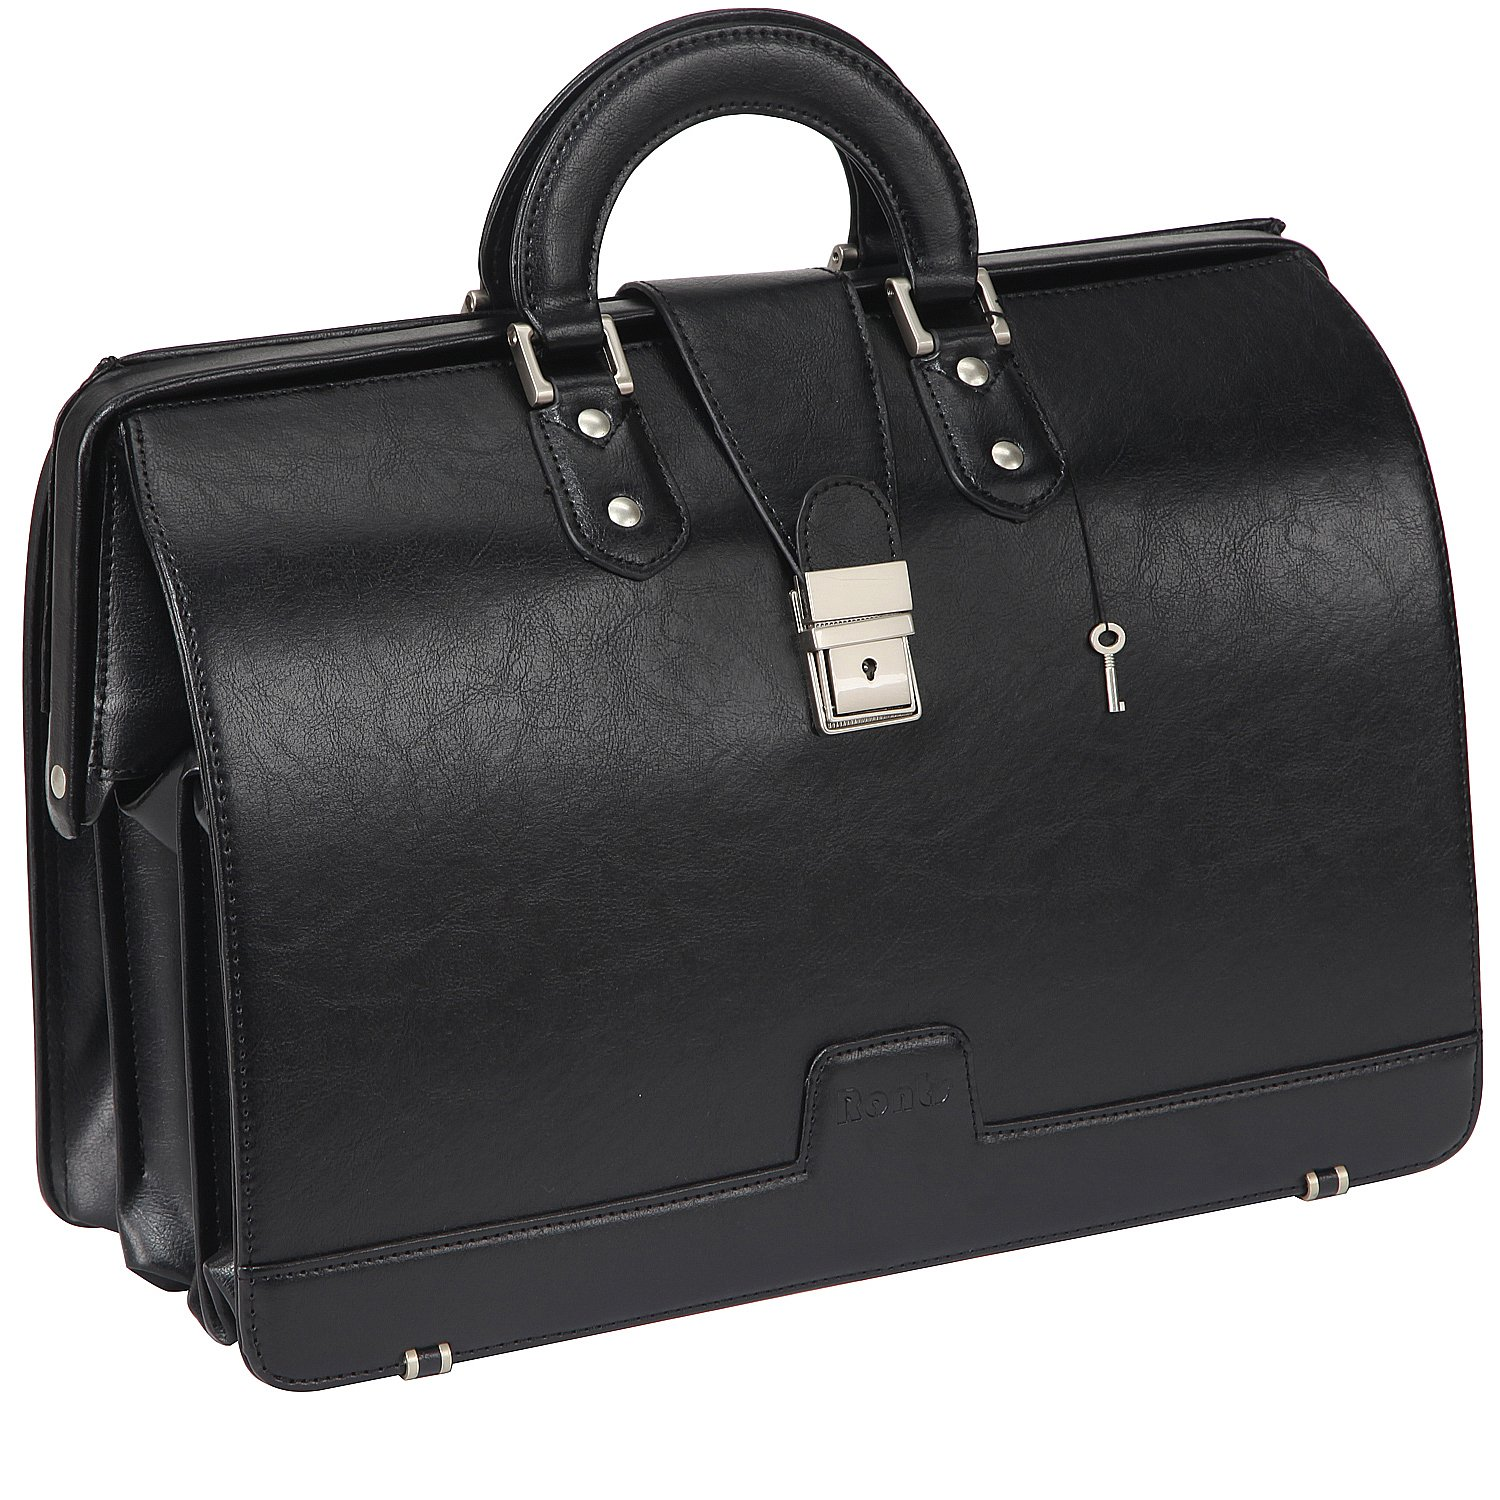 1920s Mens Accessories: Gloves, Spats, Pocket Watch, Collar Bar Ronts Mens PU Leather Briefcase Lawyer Attache Case with Lock Business Handbags Doctor Bag Medical Bag 15.6 Inch Laptop Bag Attorney Bag Black $74.99 AT vintagedancer.com